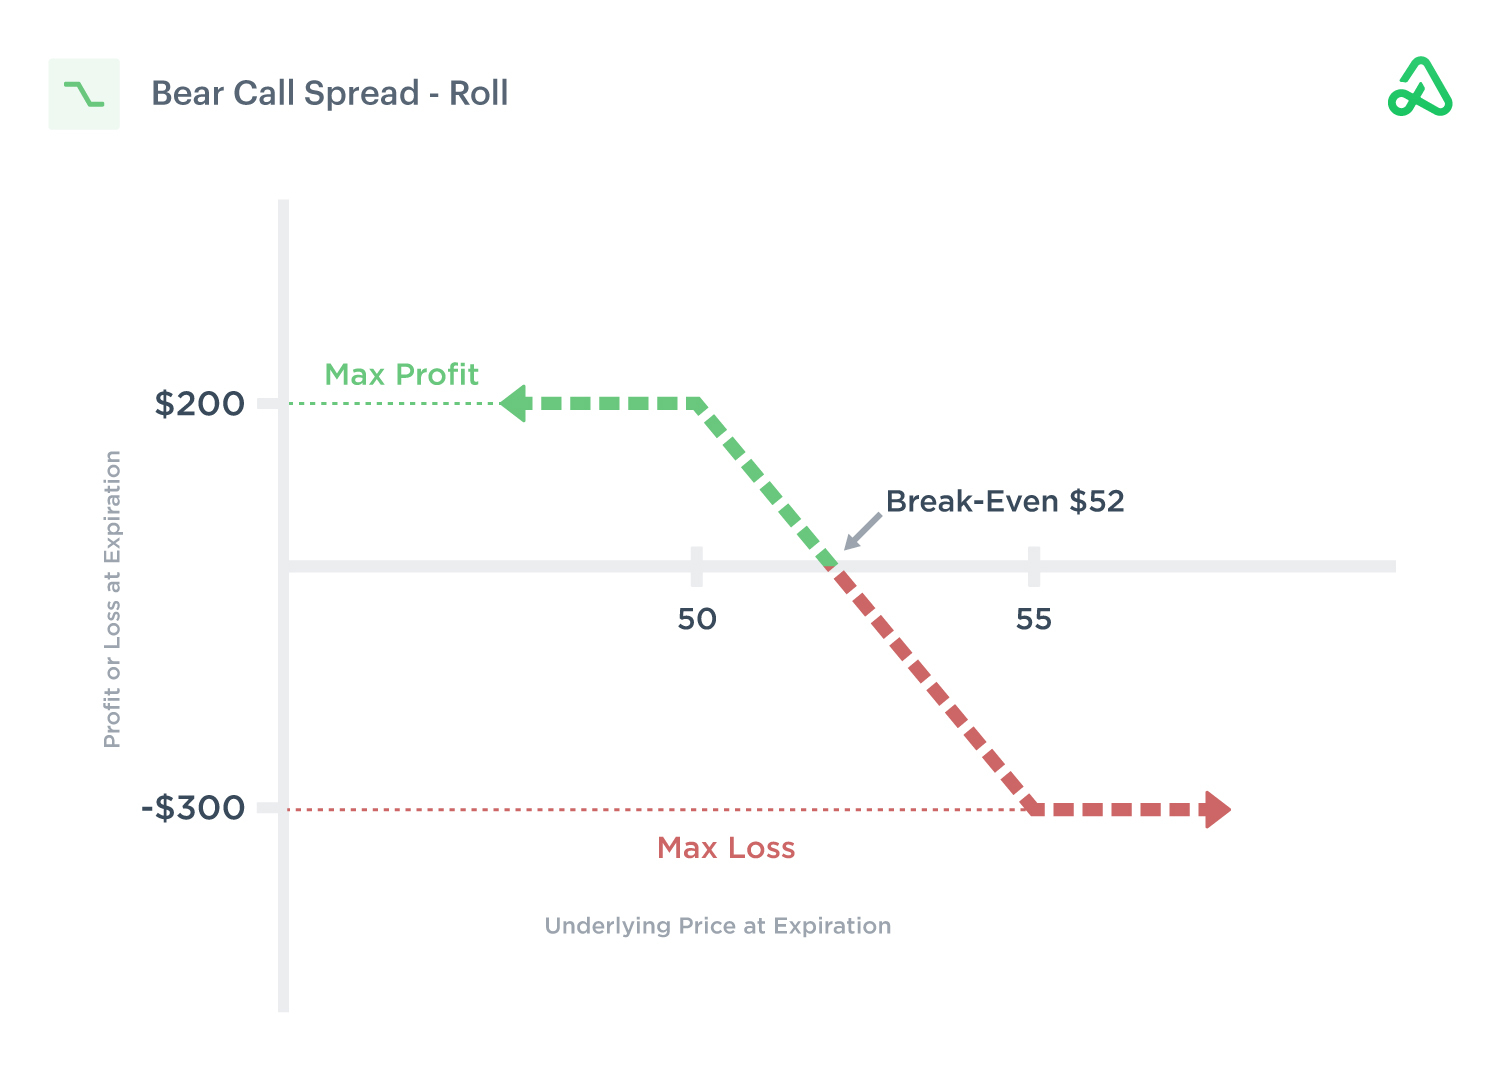 Image of a bear call spread rolled out to a later expiration date